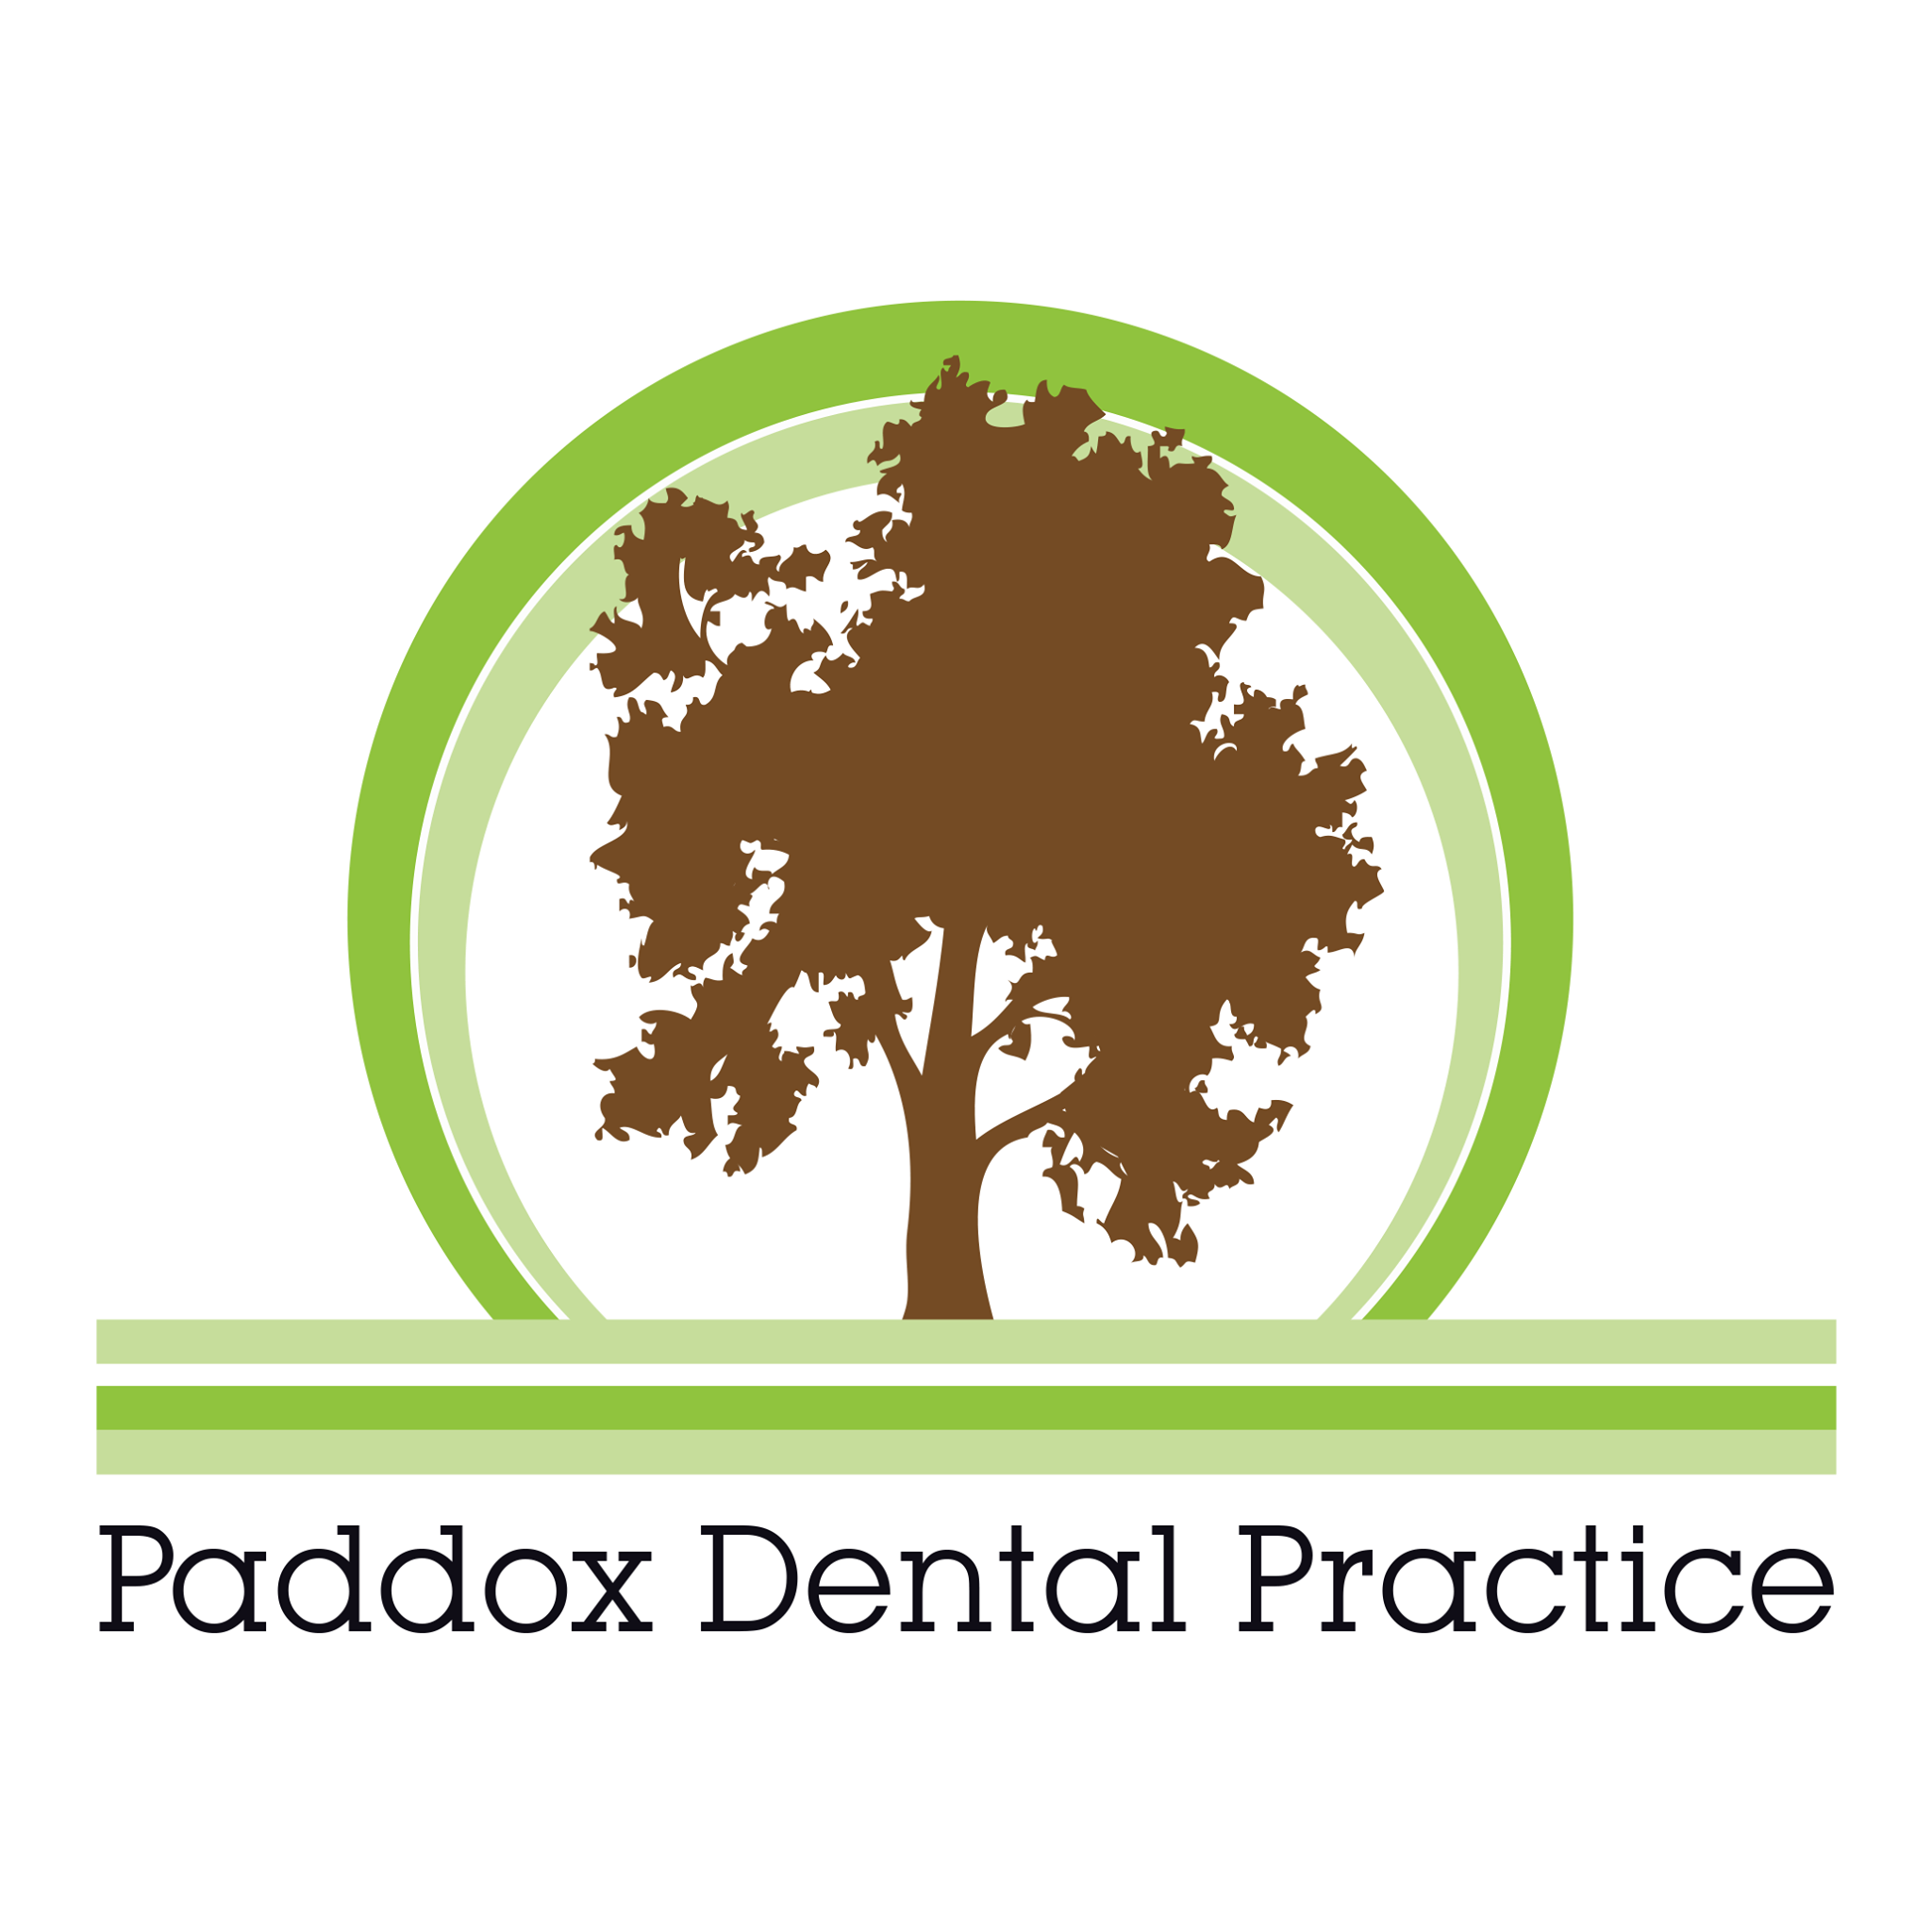 Miss Rose Brant    Dental Hygienist   CEB Diploma in Dental Hygiene  Country of issue: United Kingdom  GDC registration number: 215859   Rose qualified at Sheffield university in 2017. She joined Paddox Dental Practice in September. Rose is very patient and understanding. She has a very gentle manner.